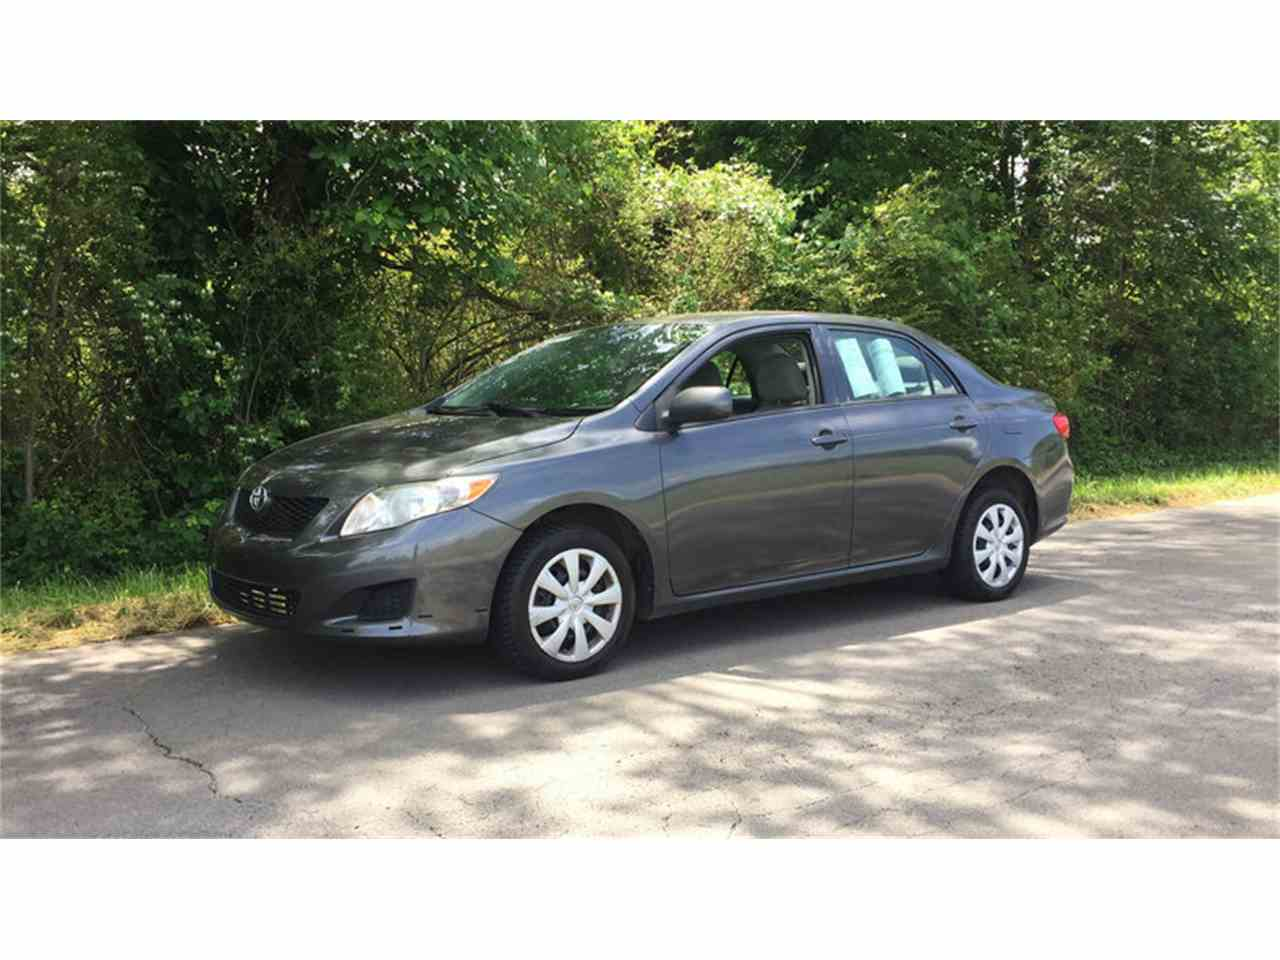 Large Picture of '10 Corolla - N8HG